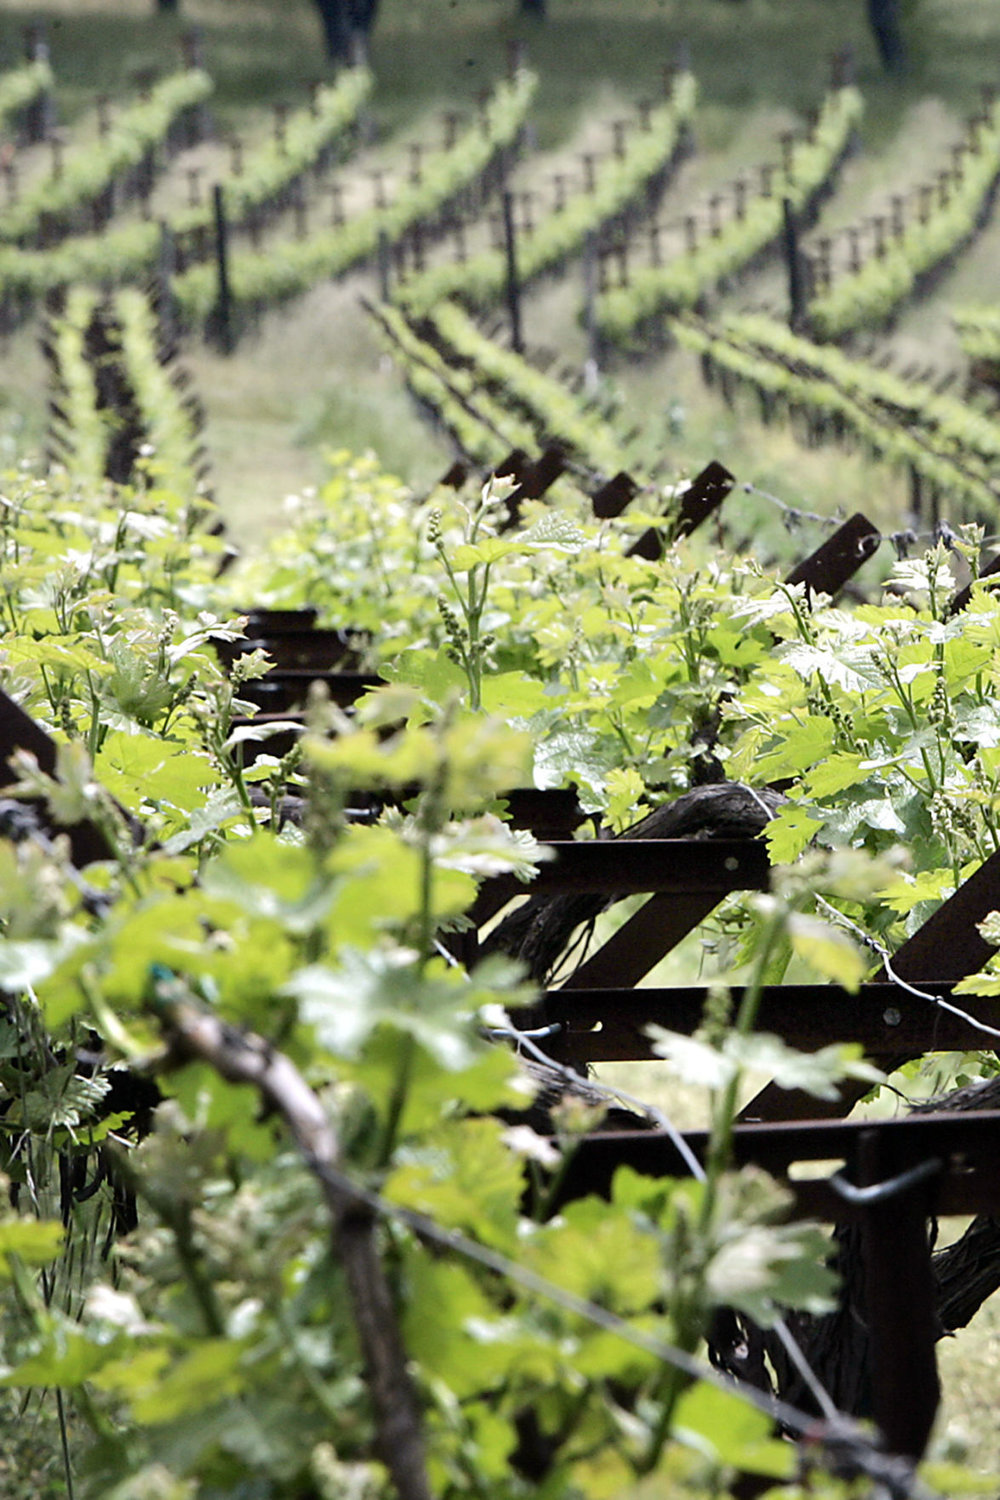 ZD Wines wins Napa County approval to make more wine